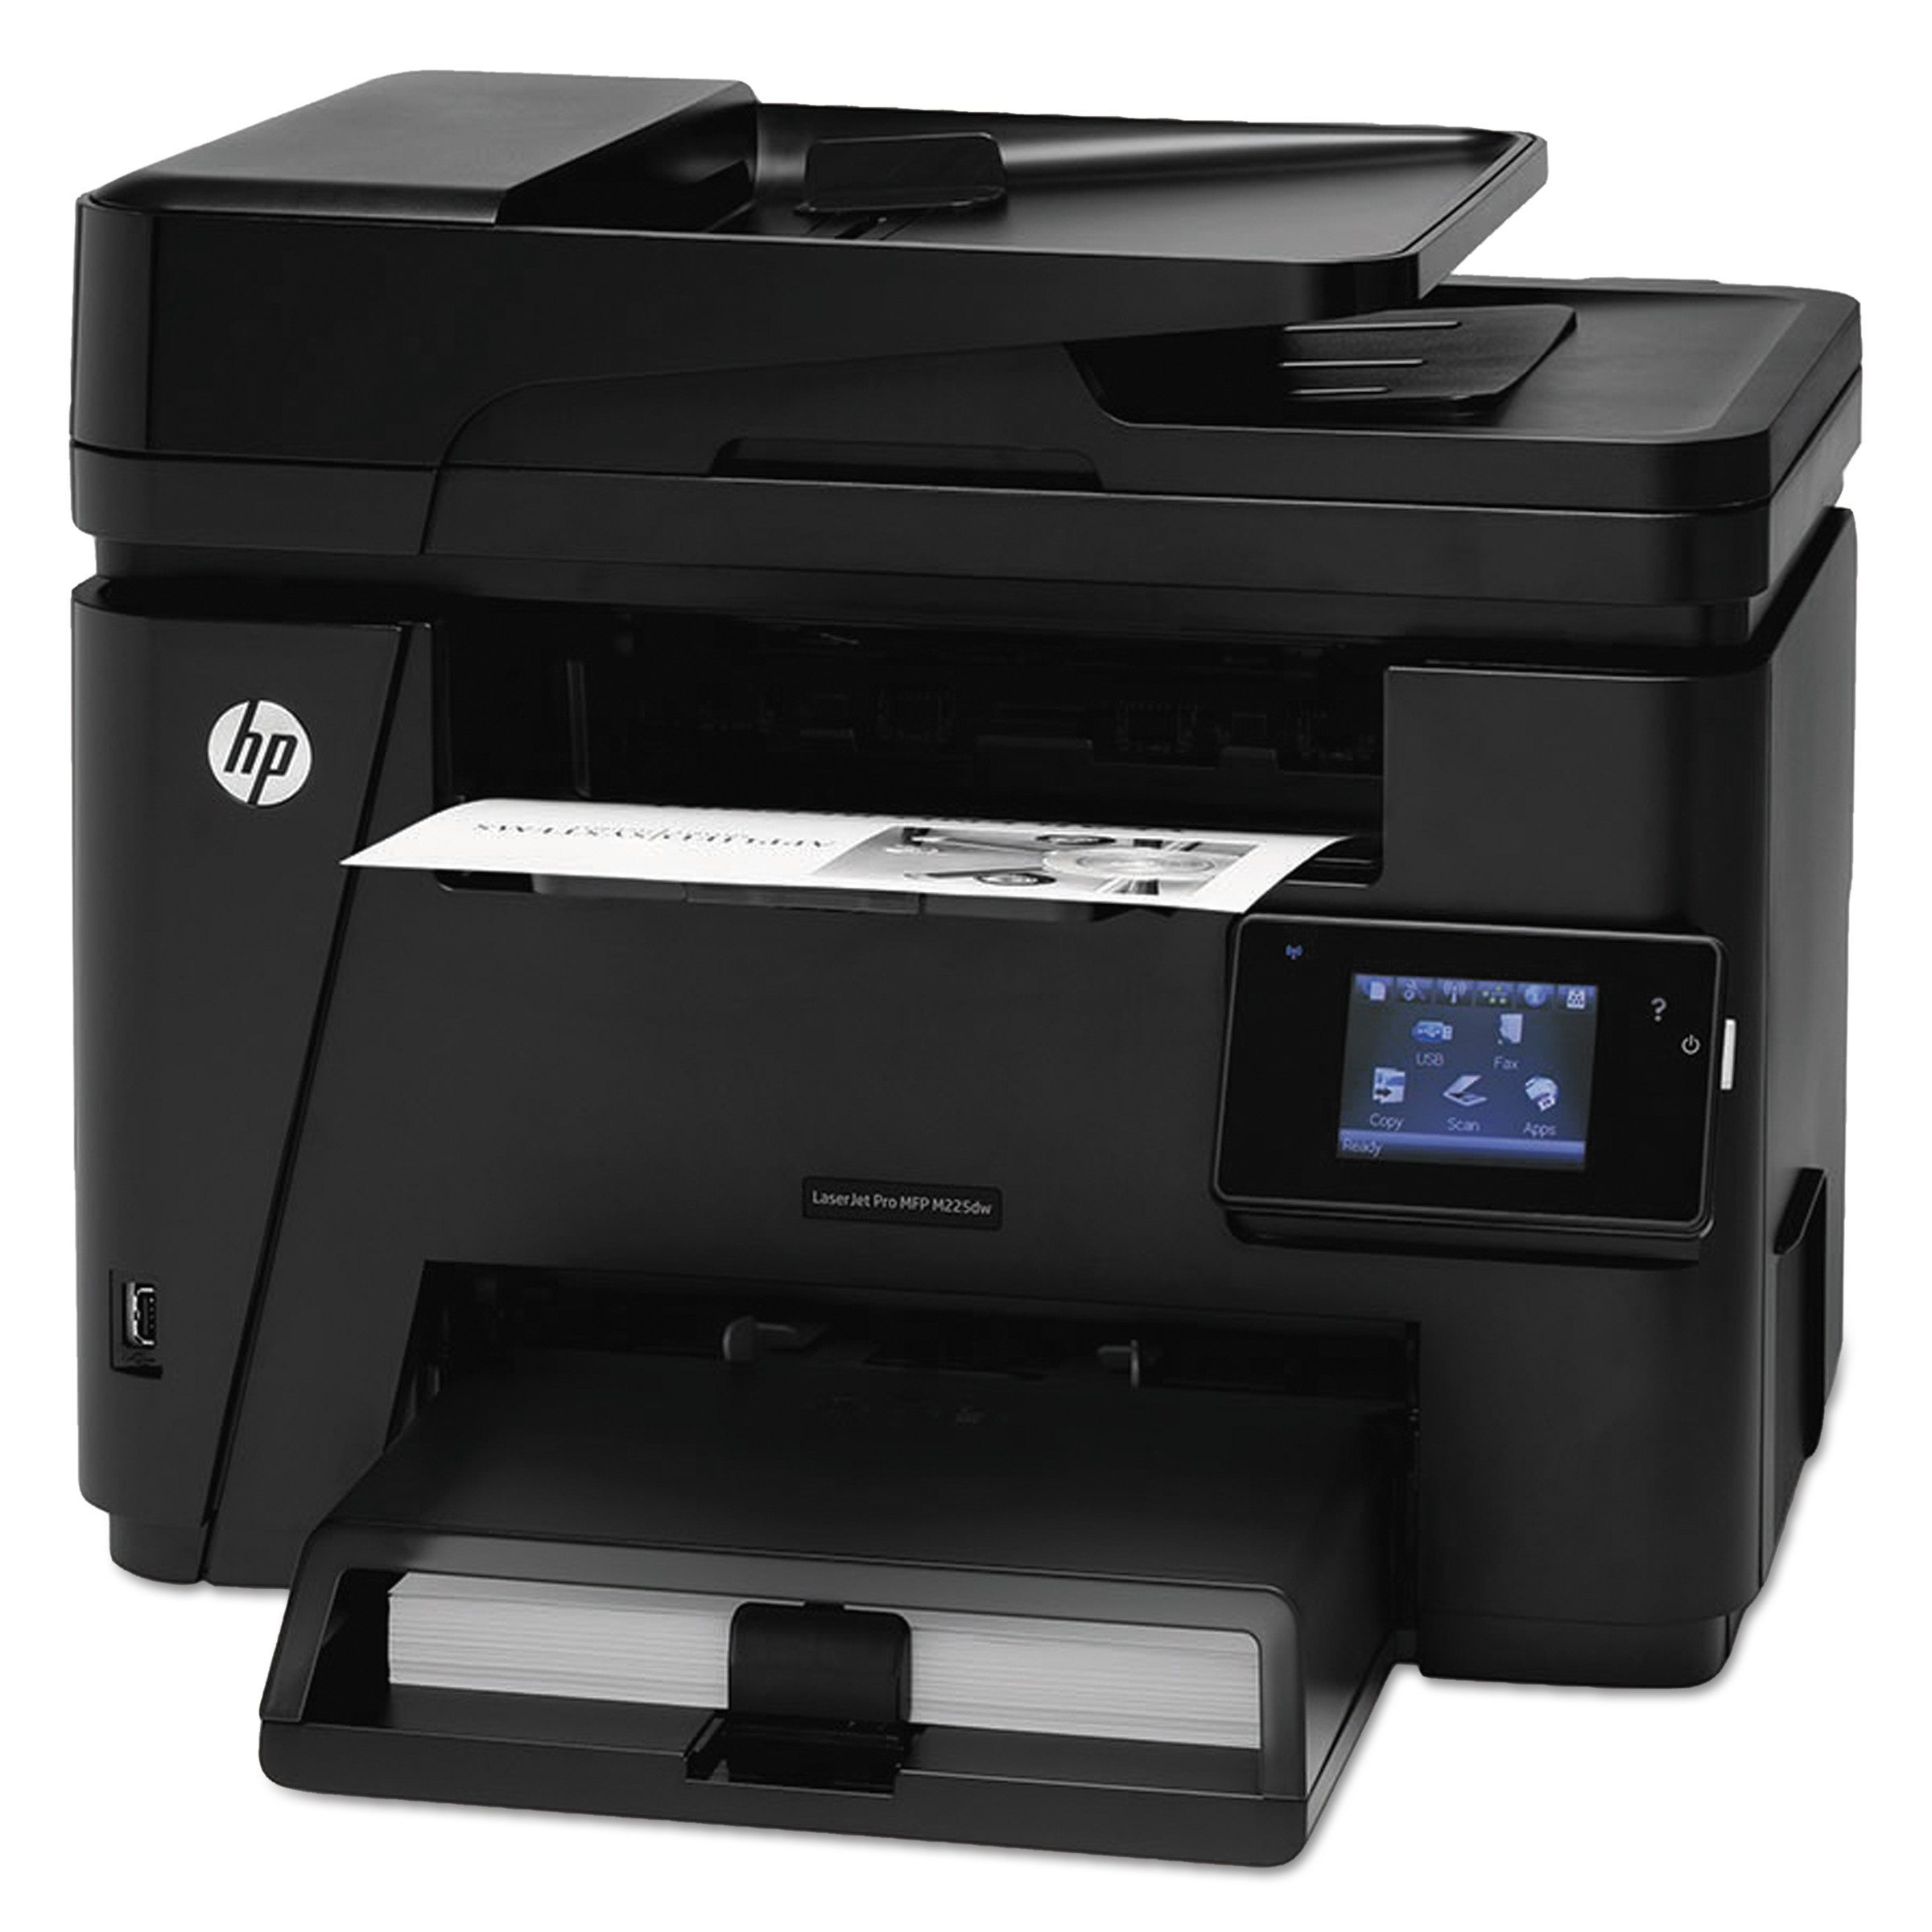 HP LaserJet Pro MFP M225dw Multifunction Laser Printer, Copy/Fax/Print/